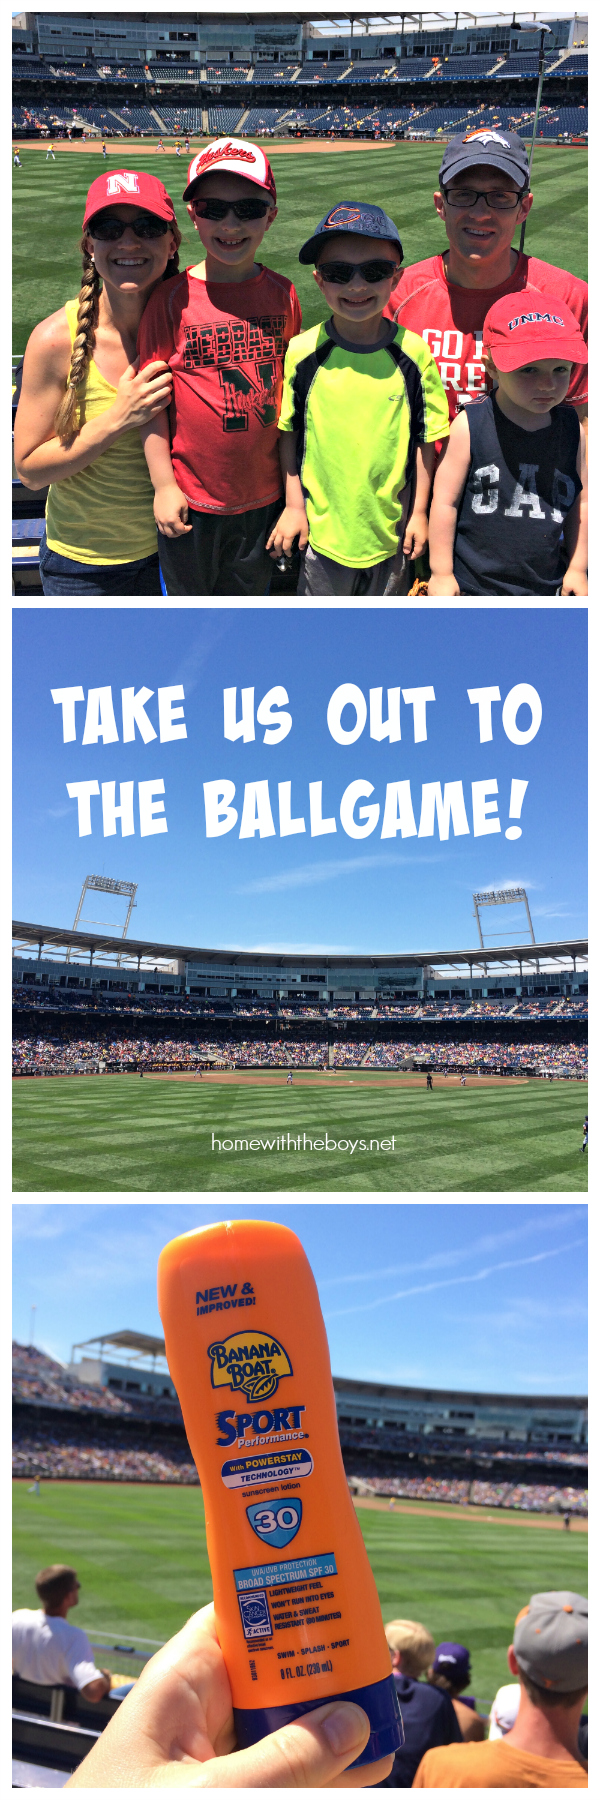 Take Us Out to the Ballgame!